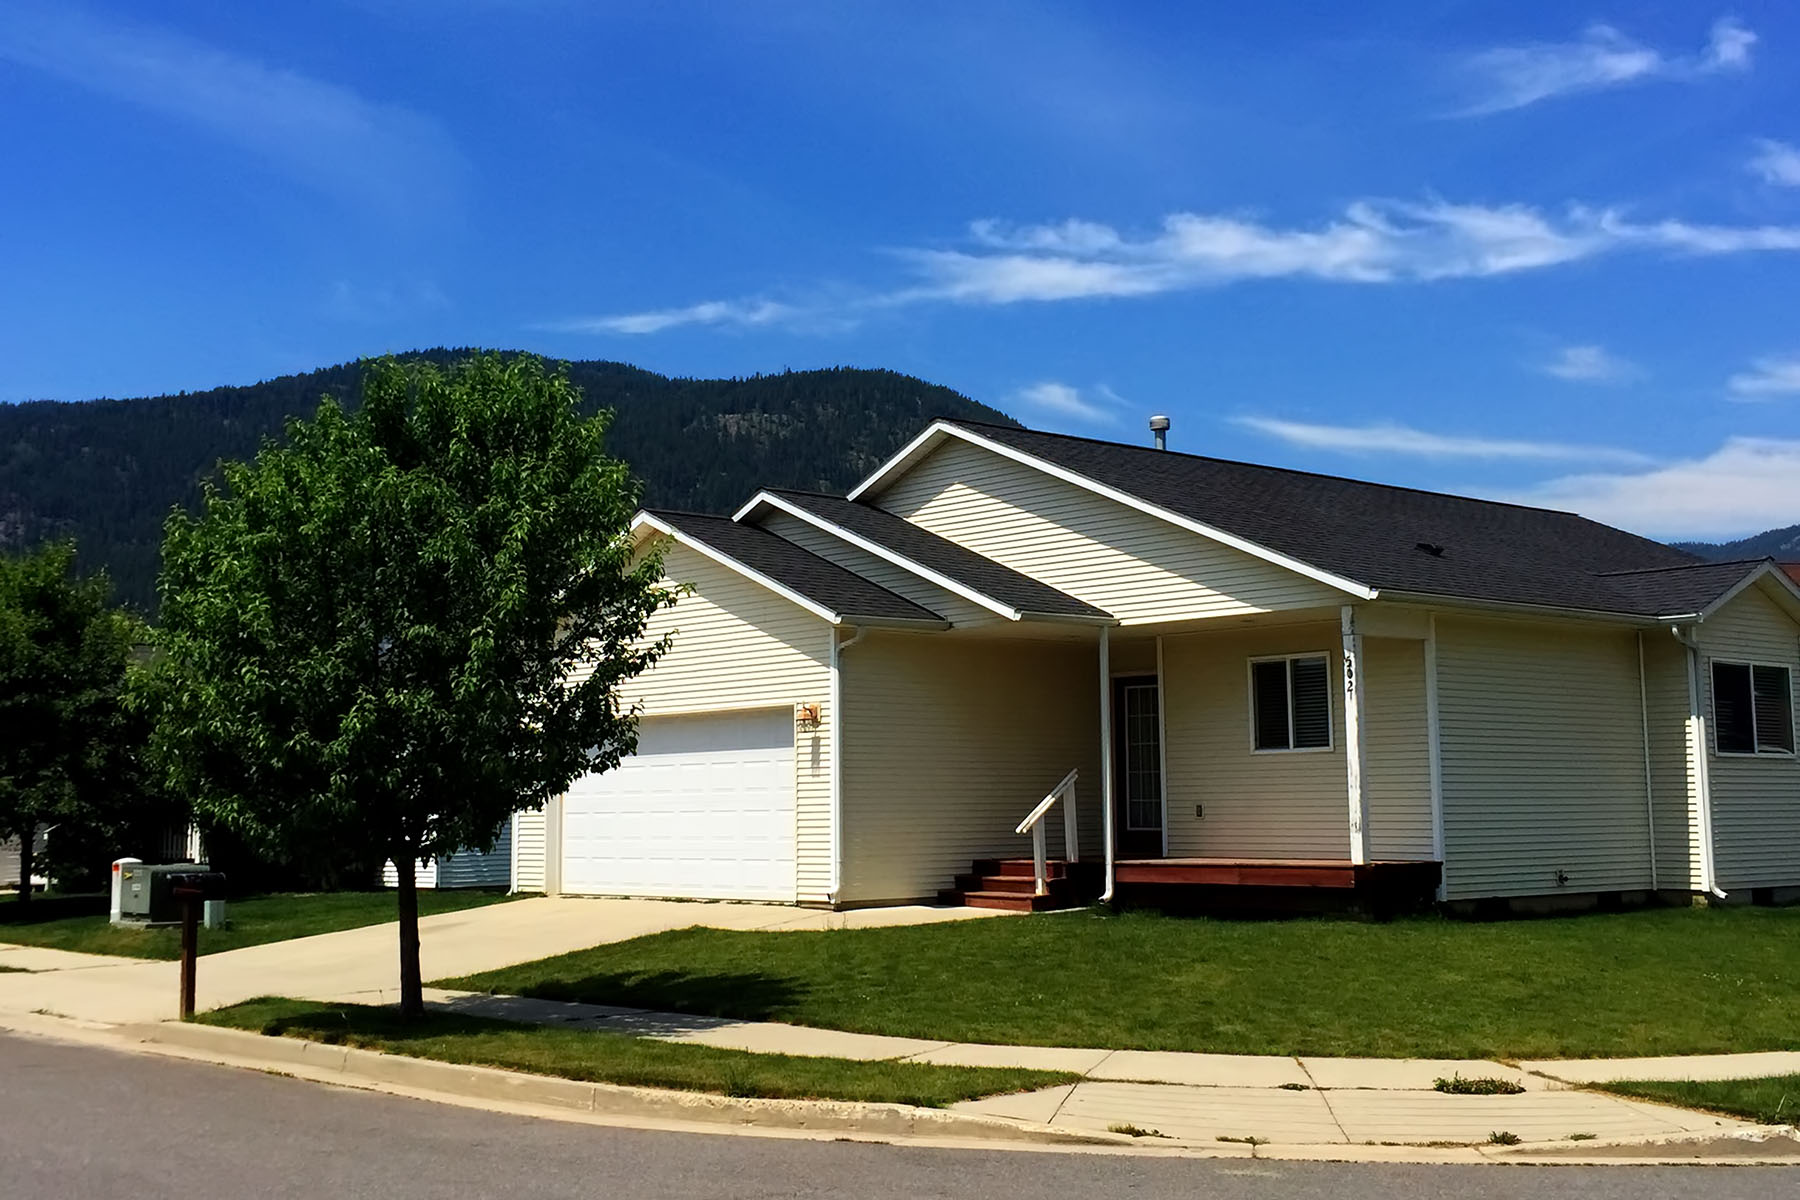 Single Family Home for Sale at Downtown Sandpoint Charmer! 502 Alexander Way Sandpoint, Idaho, 83864 United States